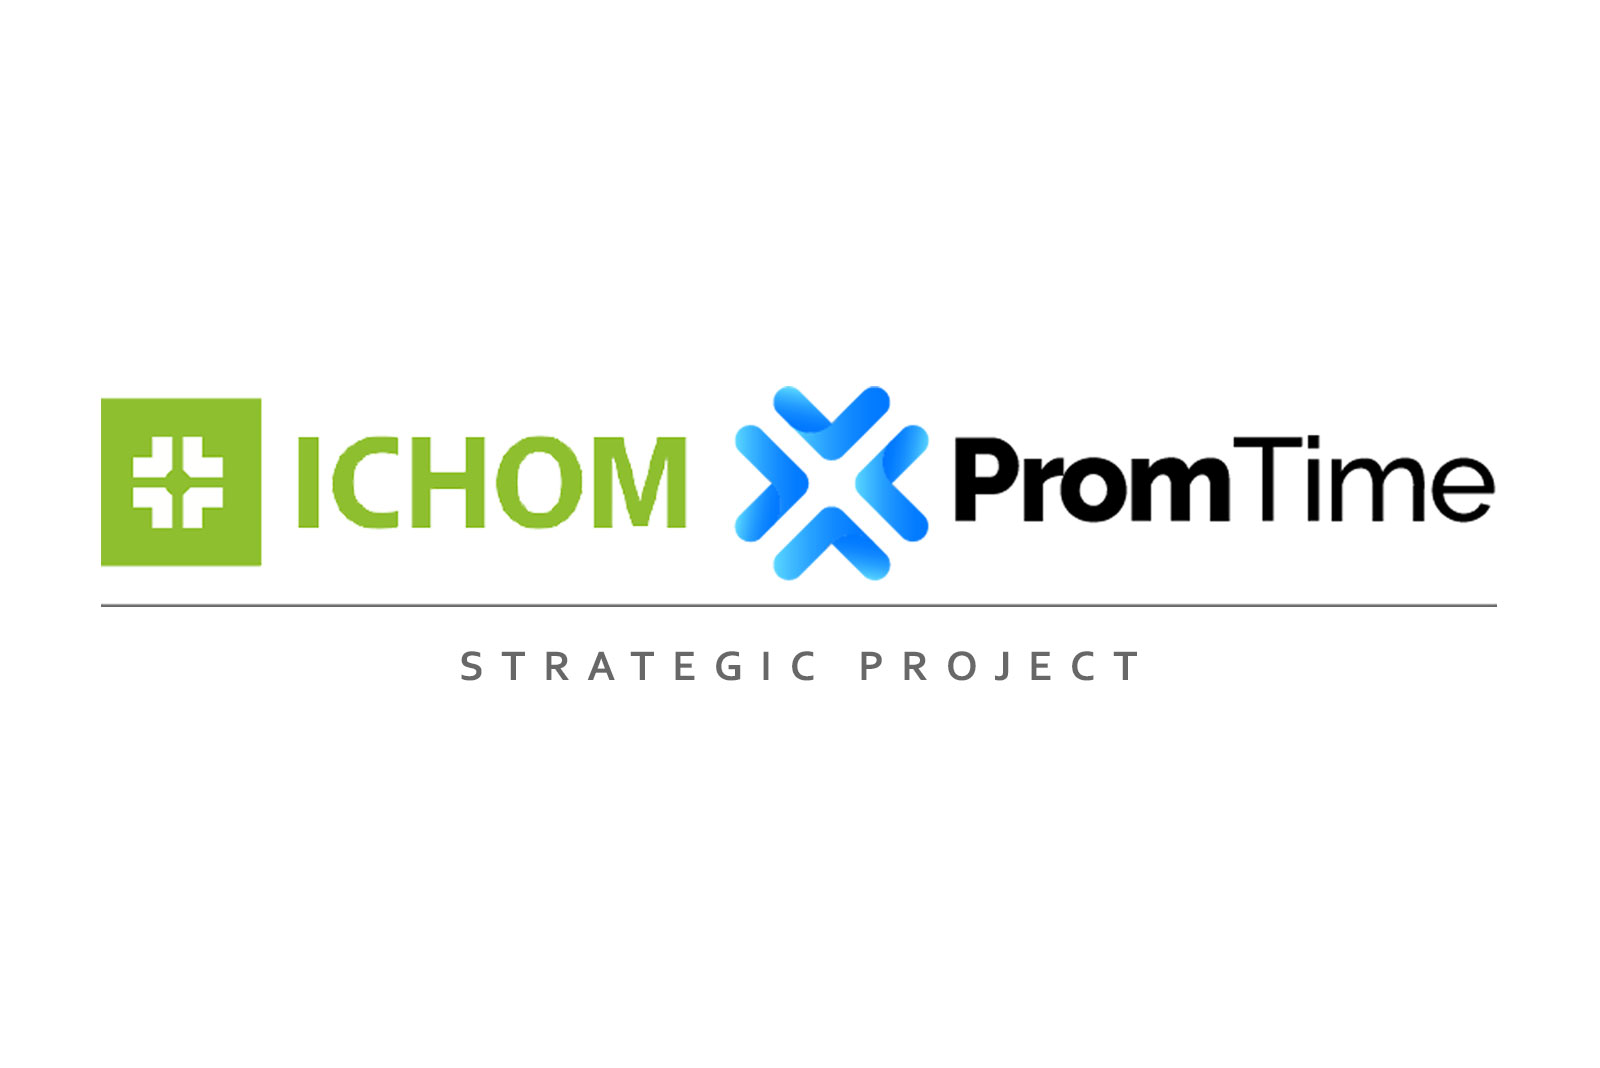 ICHOM and Promtime Strategic Project